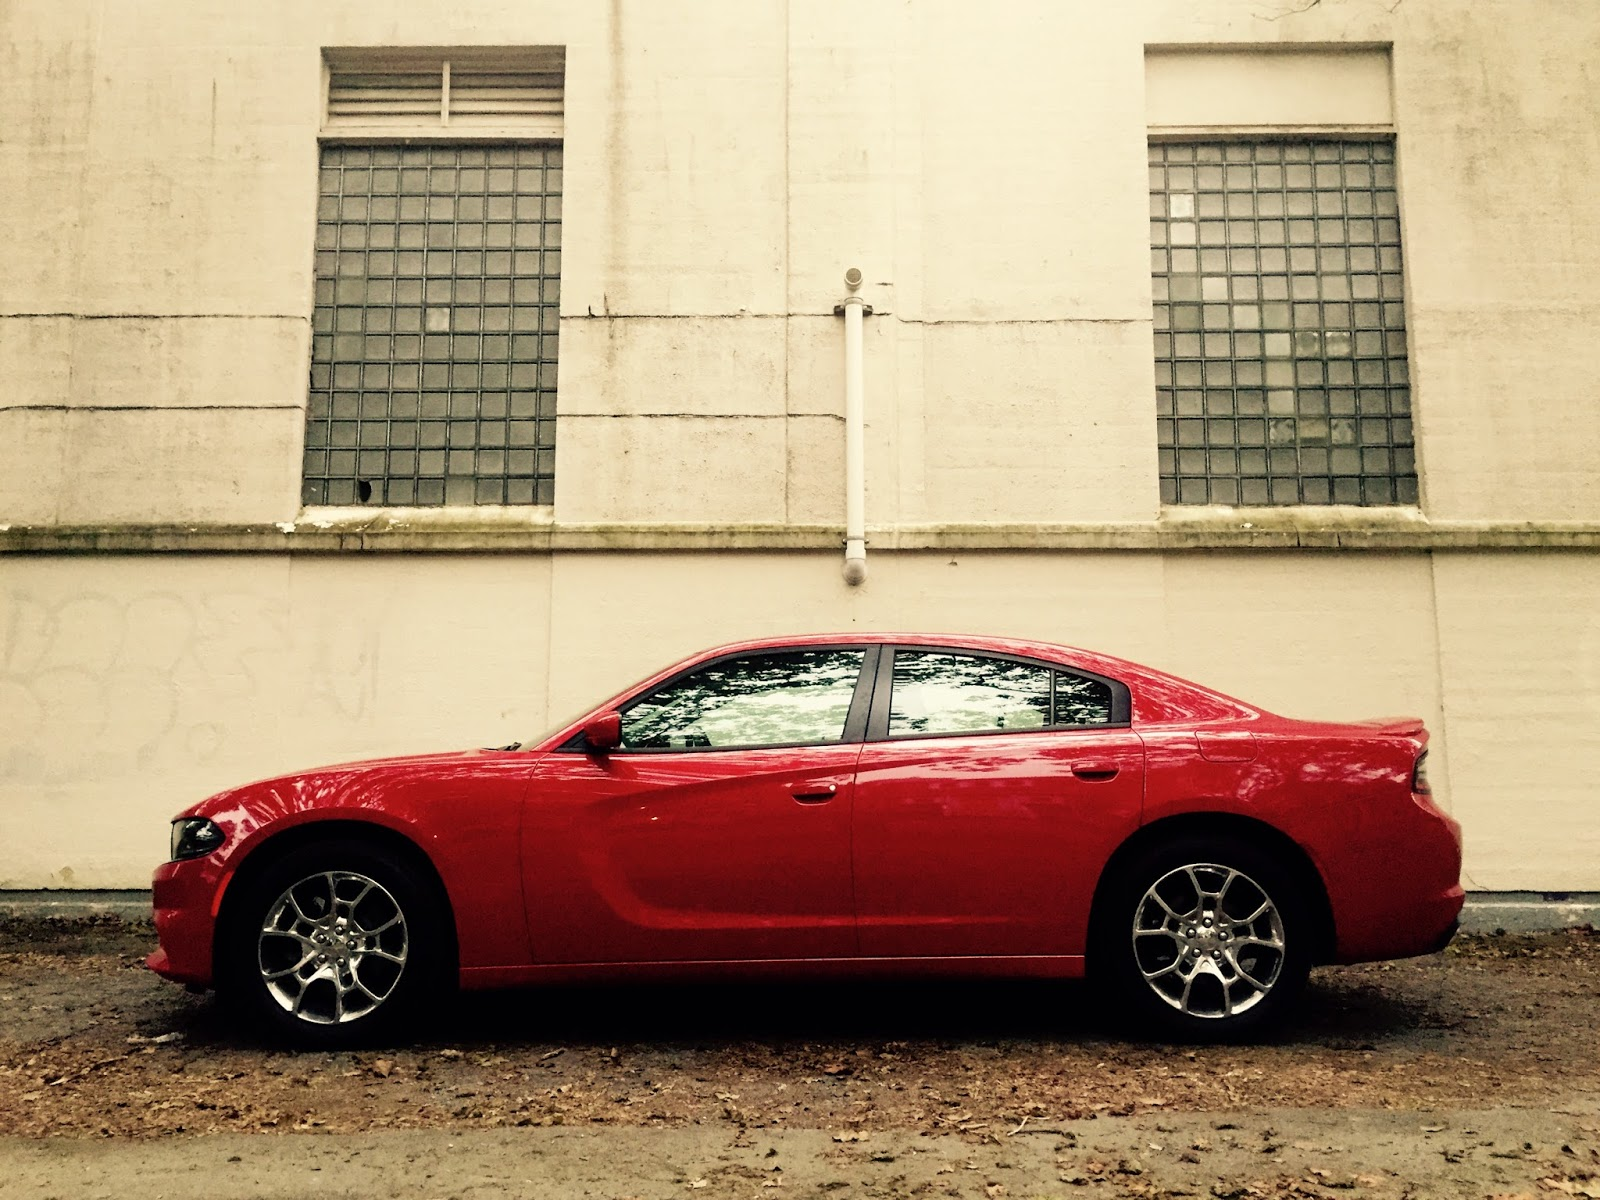 2015 Dodge Charger Sxt Rallye Awd Review Ain T Got A Hemi And